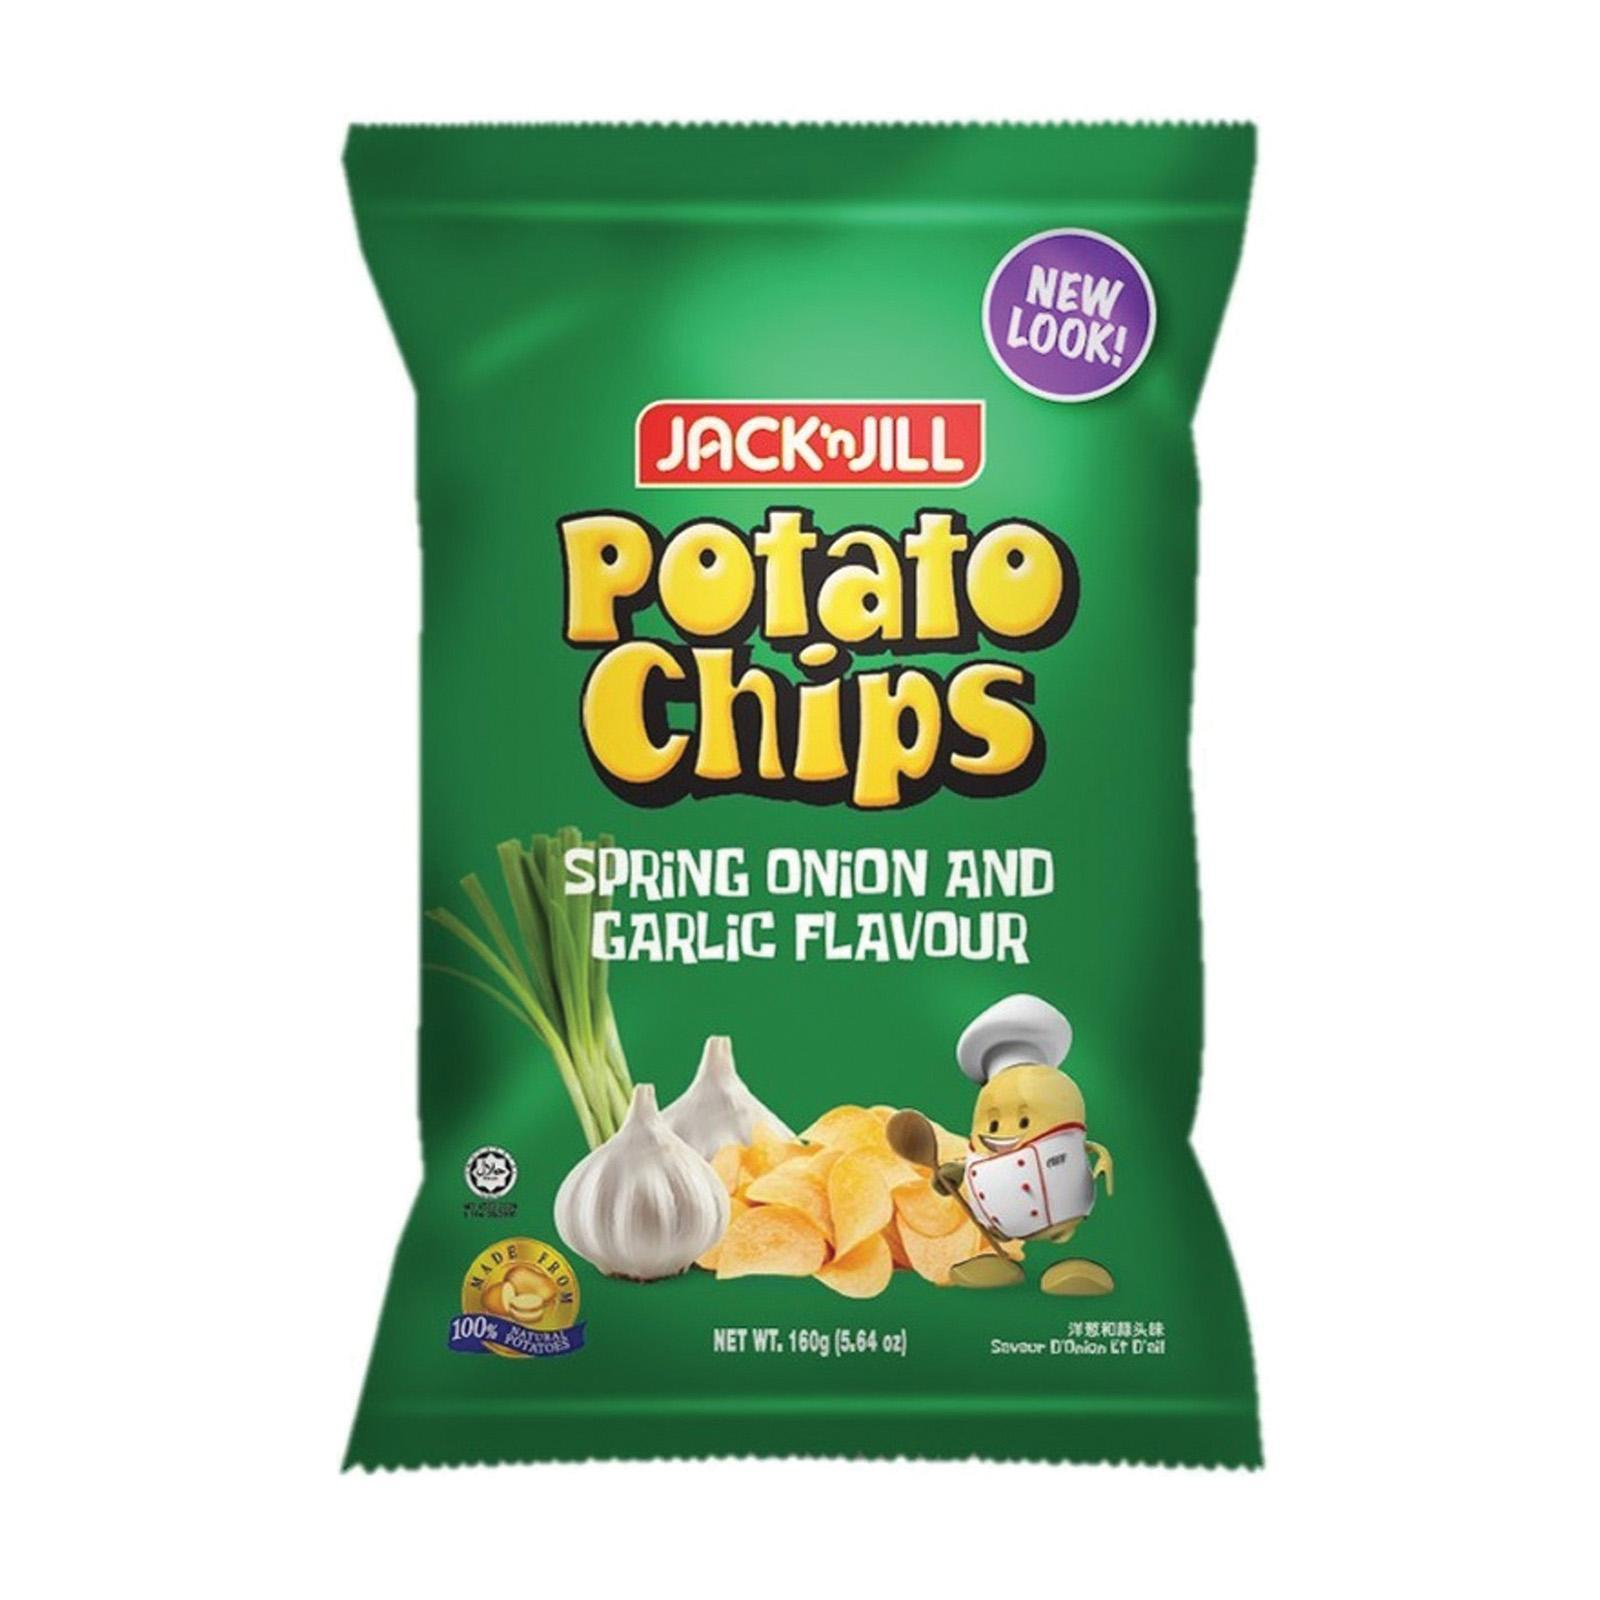 Jack N' Jill Spring Onion and Garlic Flavour Potato Chips